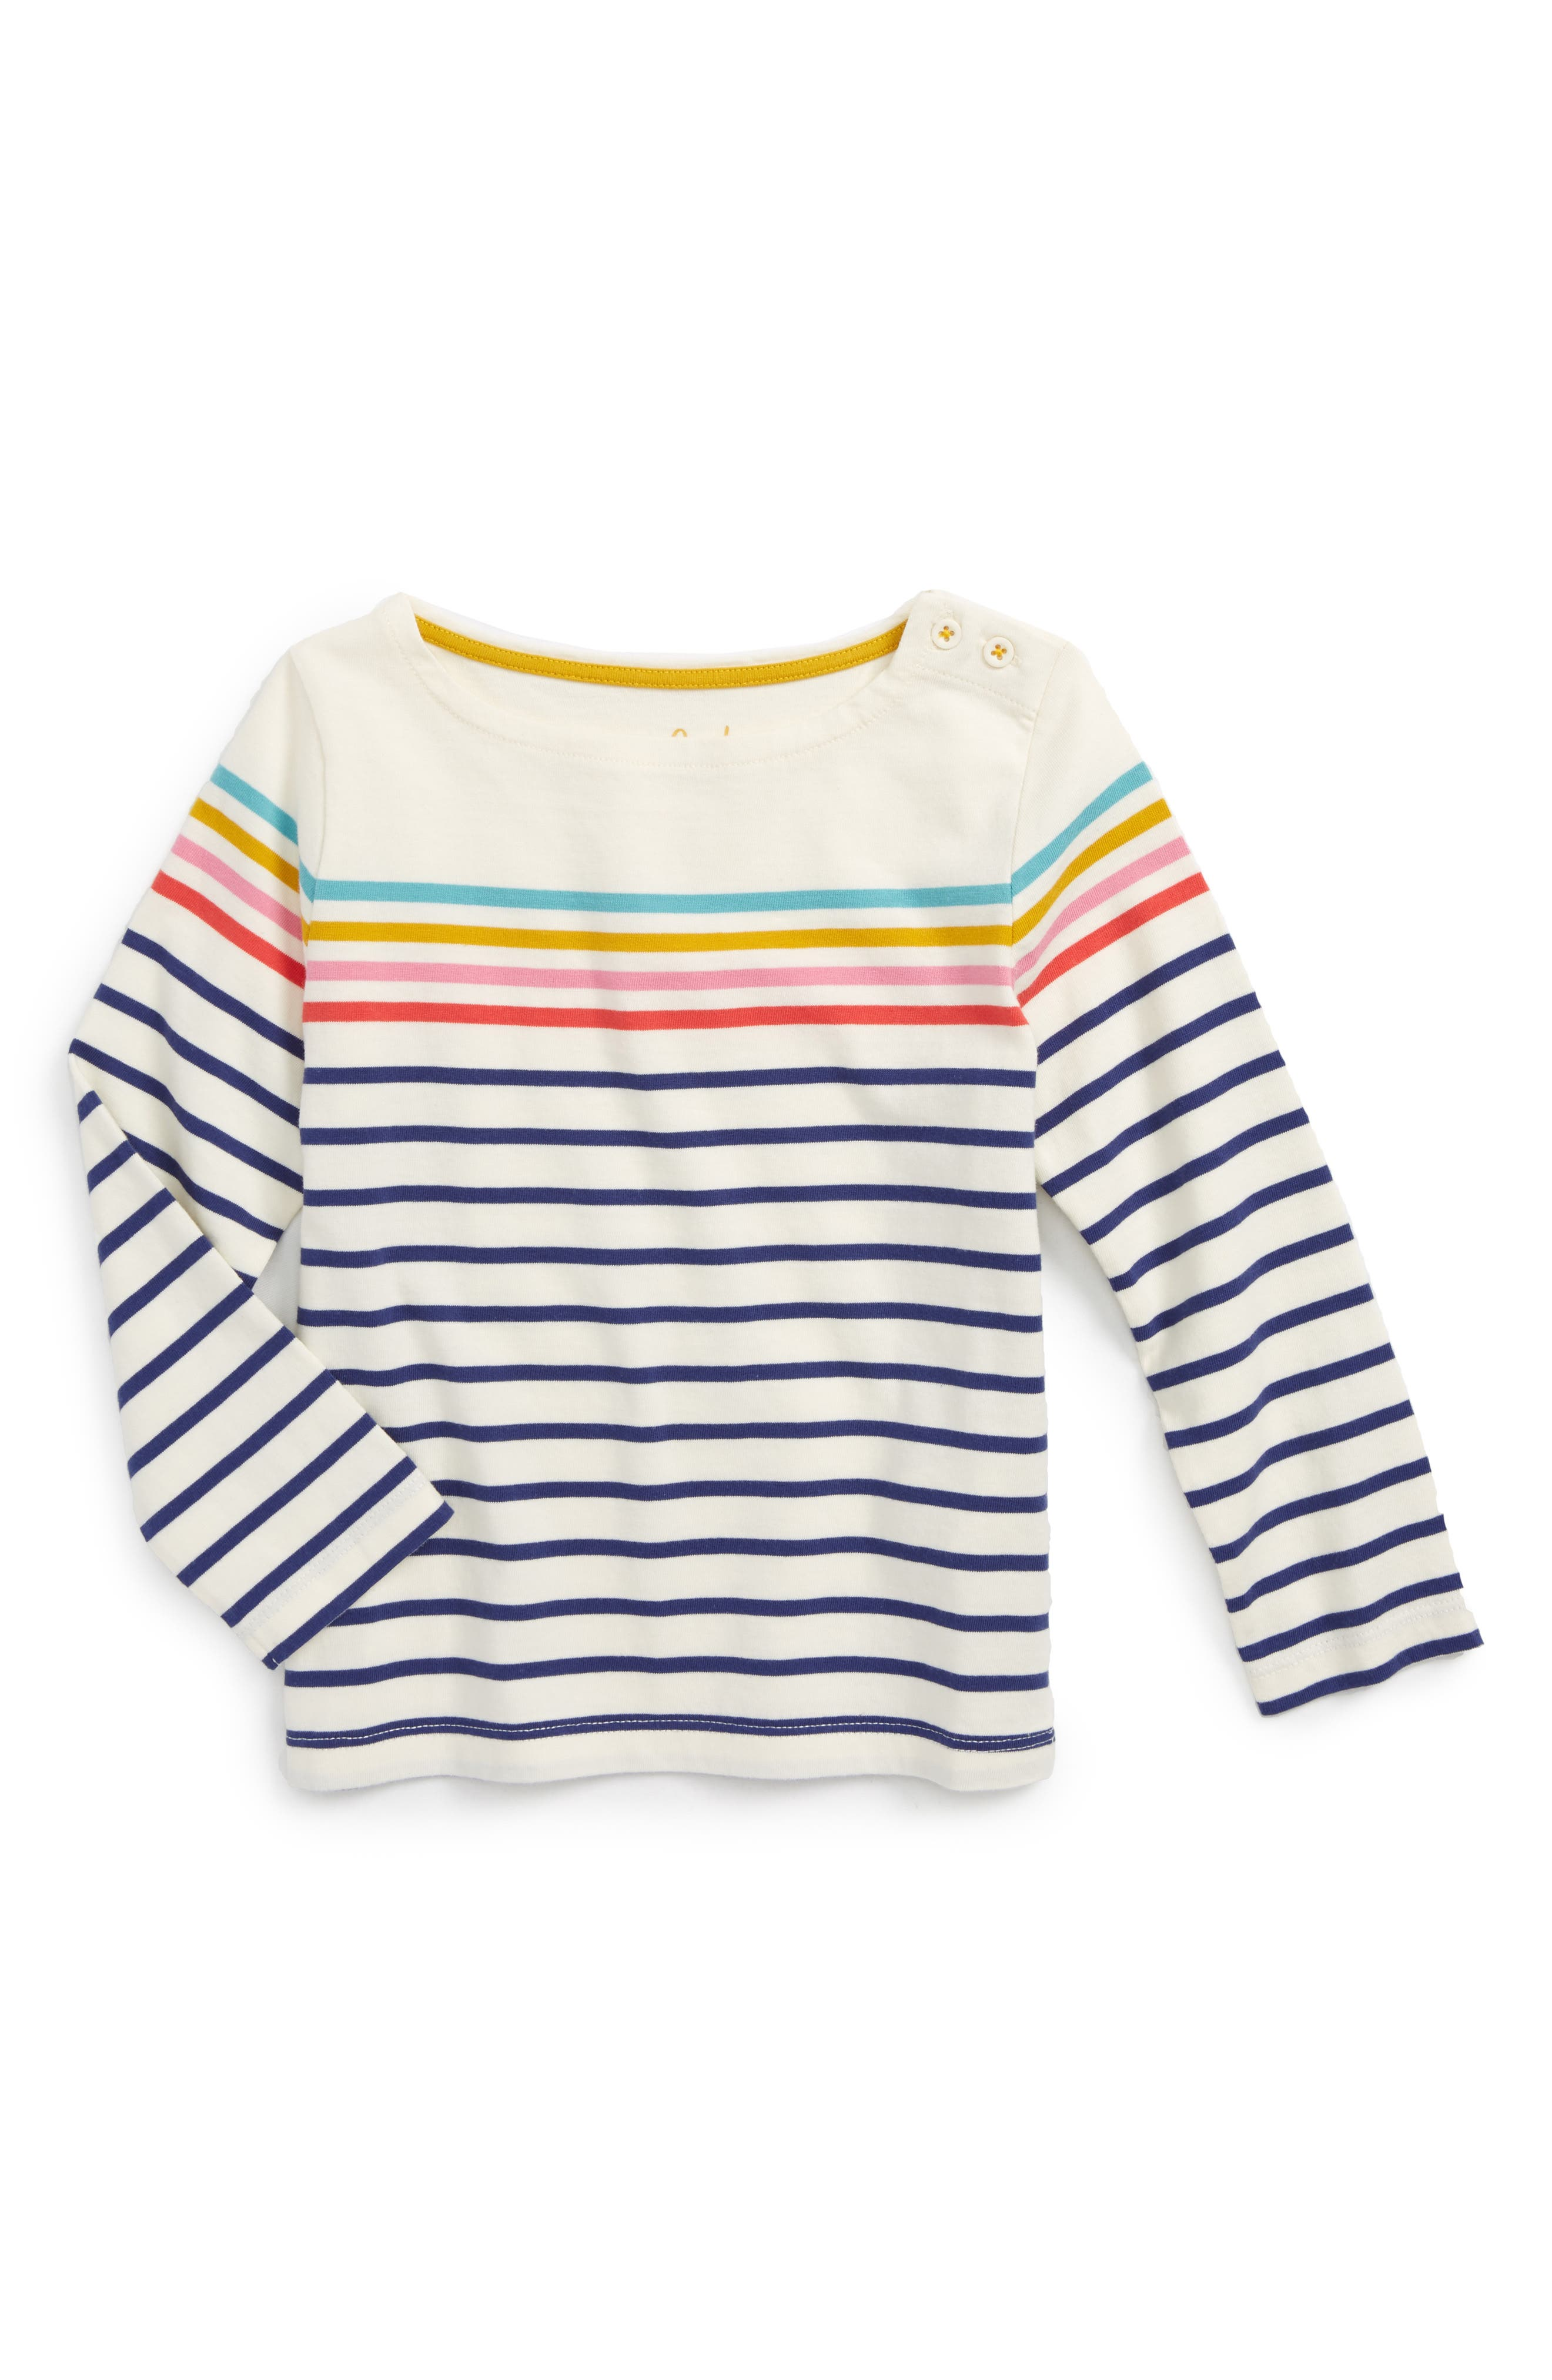 MINI BODEN Colourfully Stripy Tee